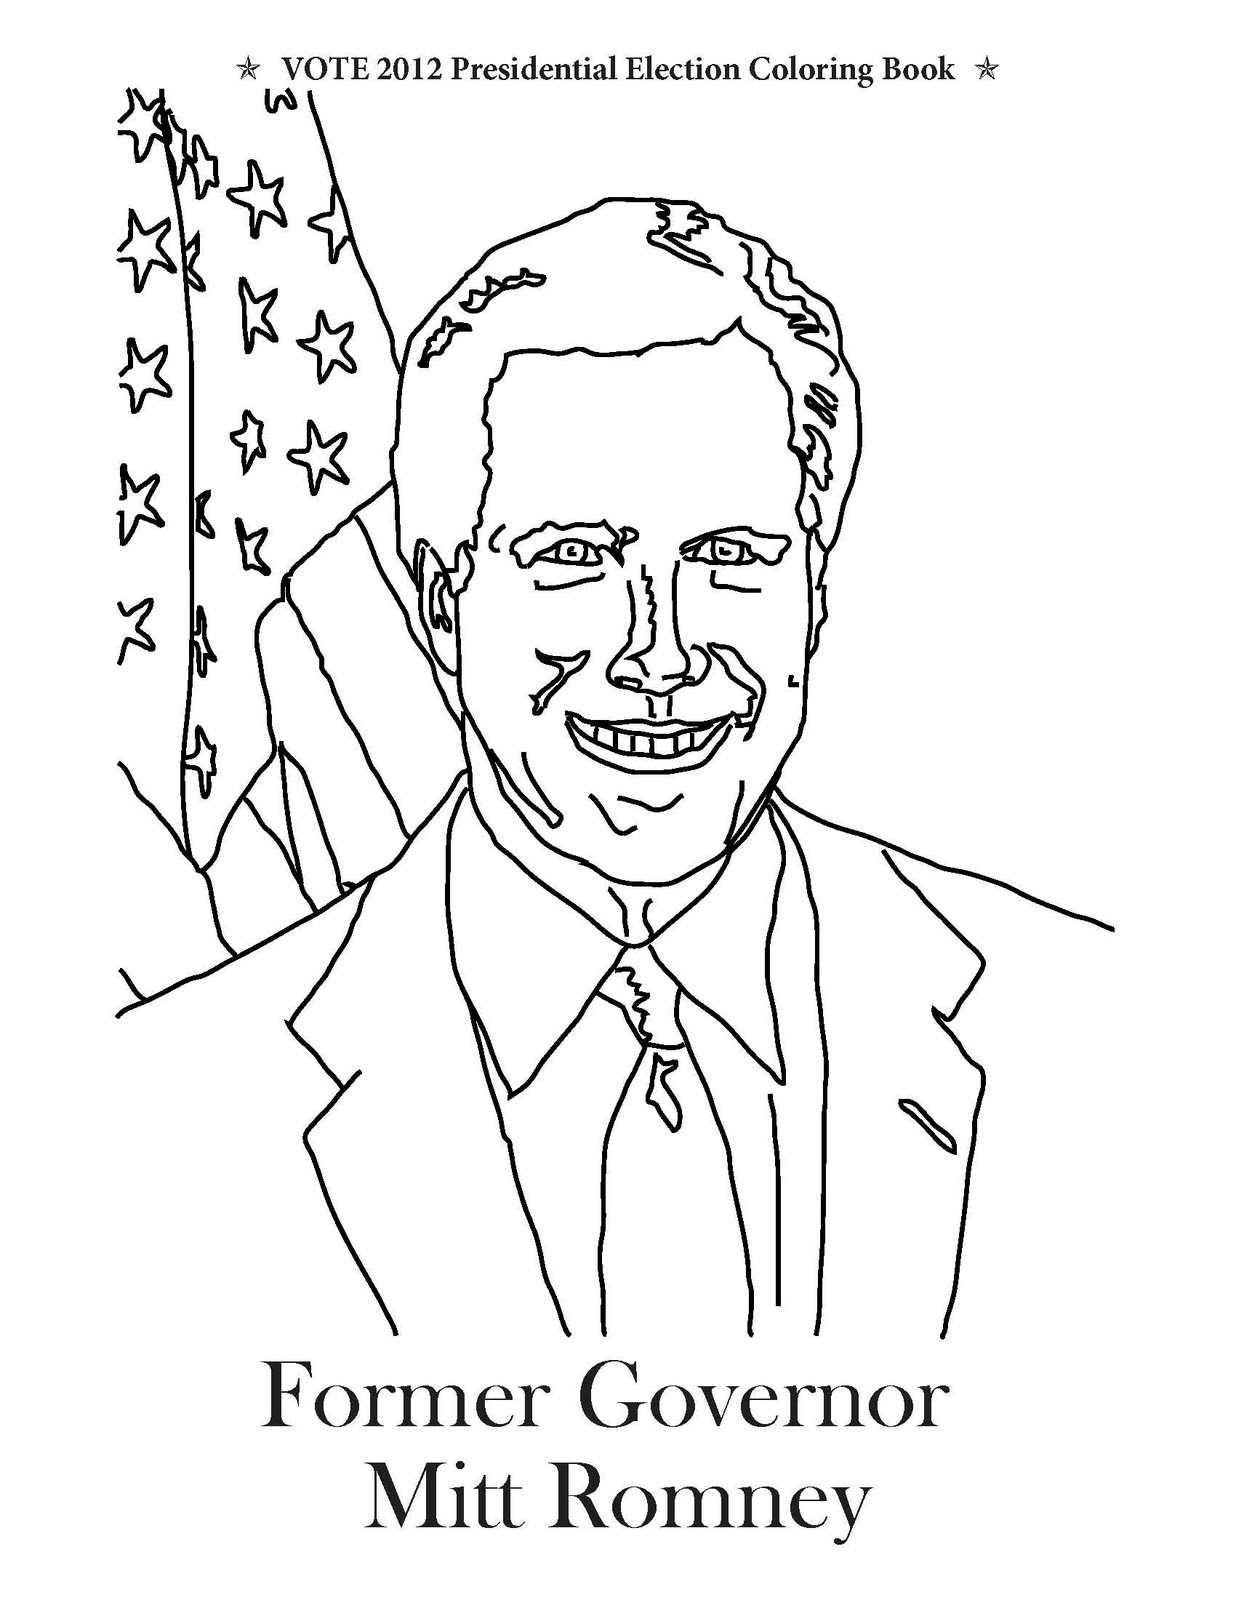 governor mitt romney ready for coloring from our coloring book vote 2012 presidential election